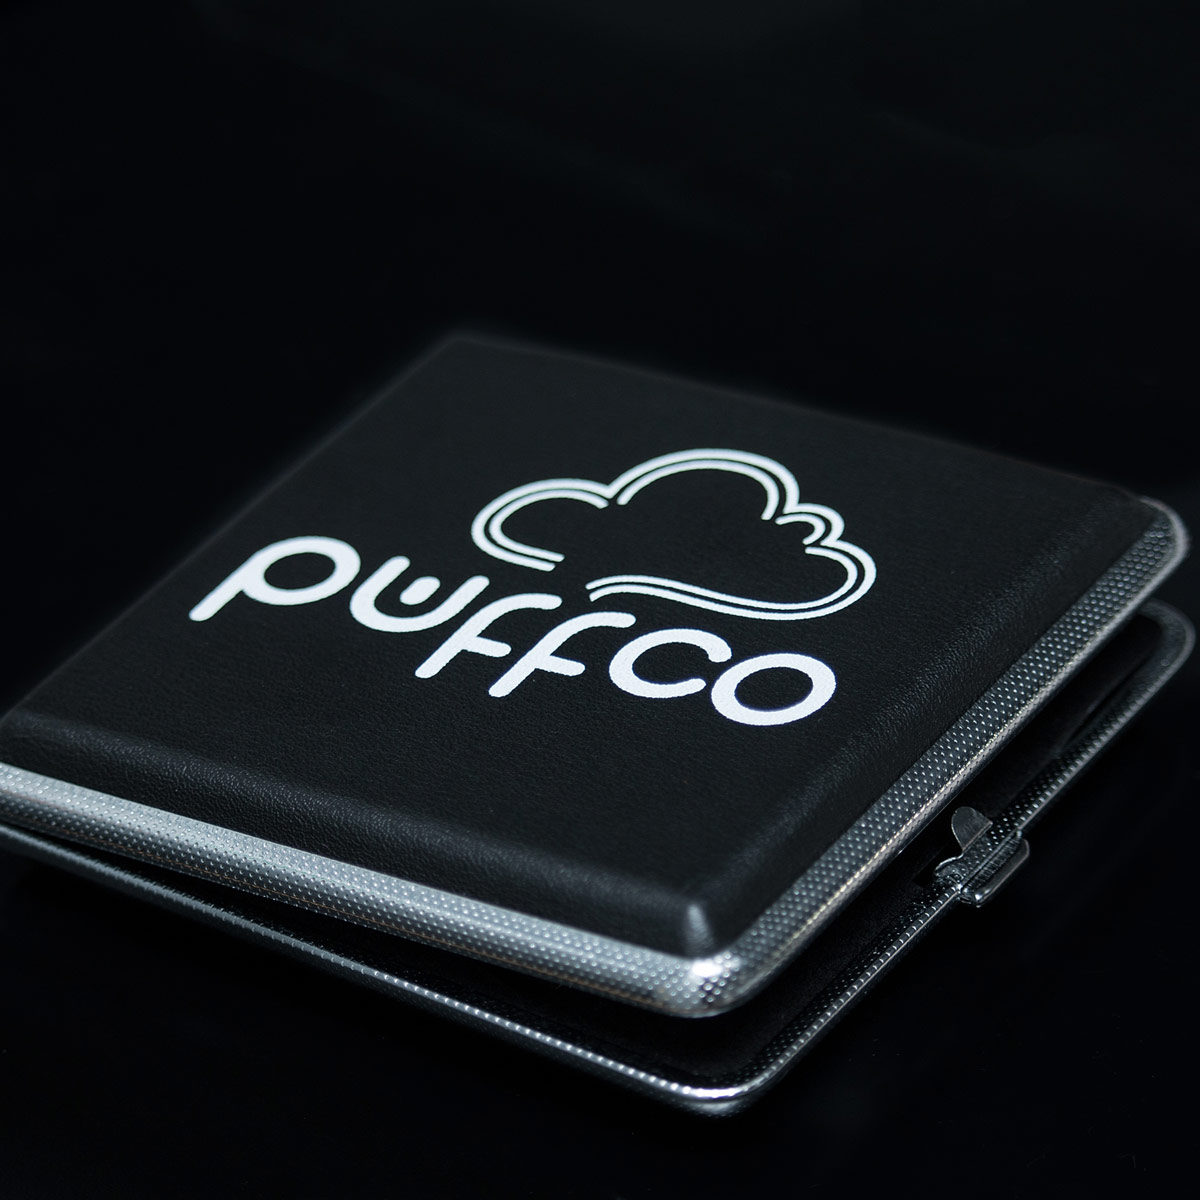 Puffco Pro Clamshell case